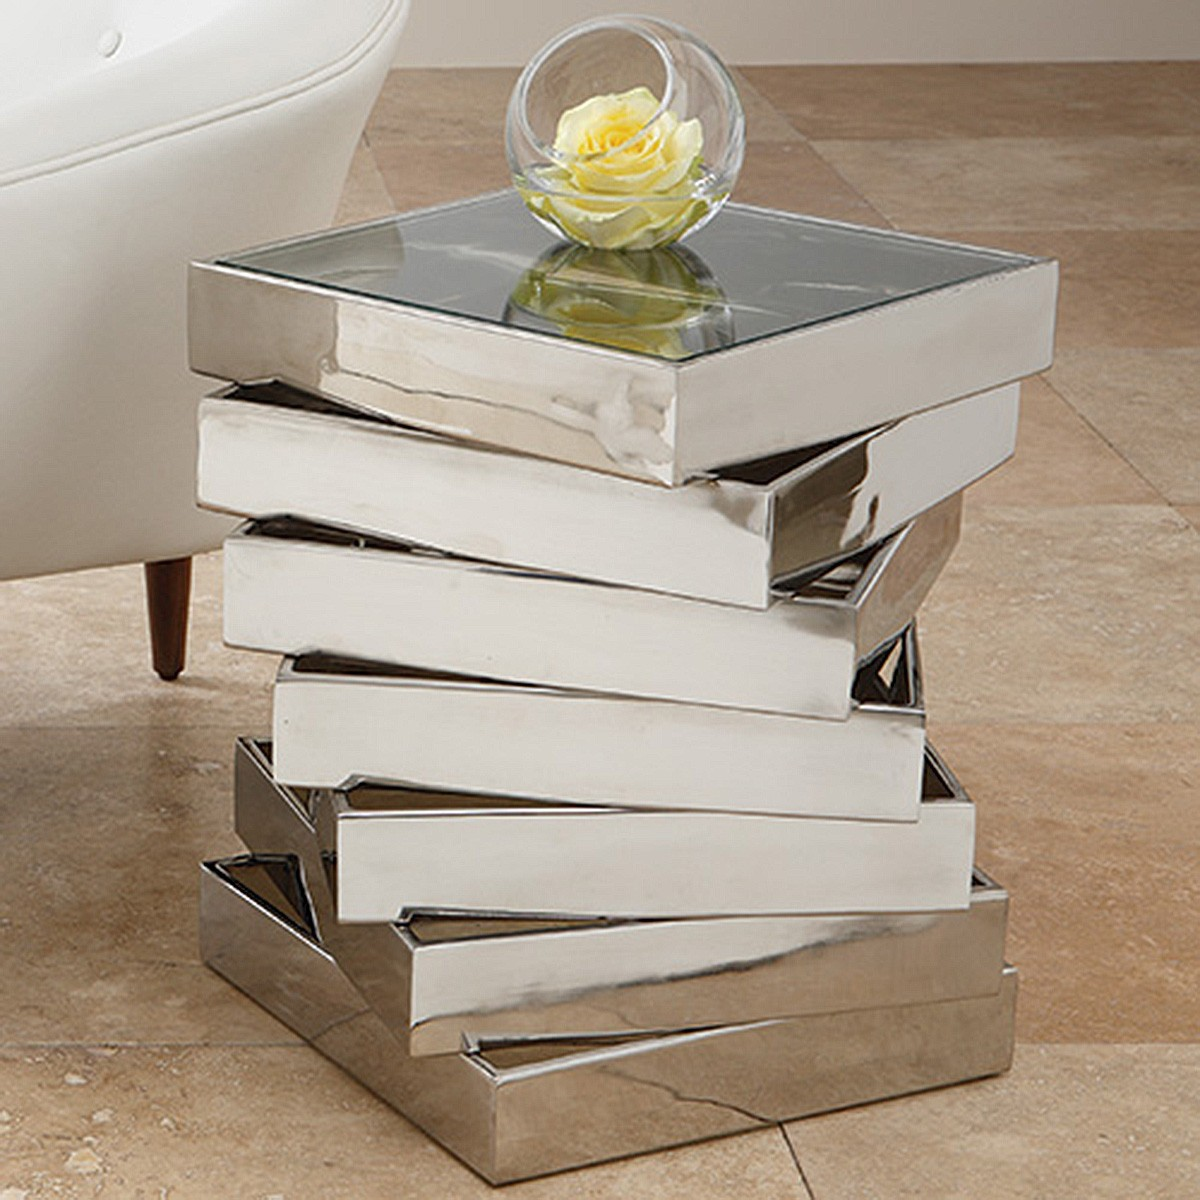 Small coffee table design images photos pictures for Unusual coffee tables